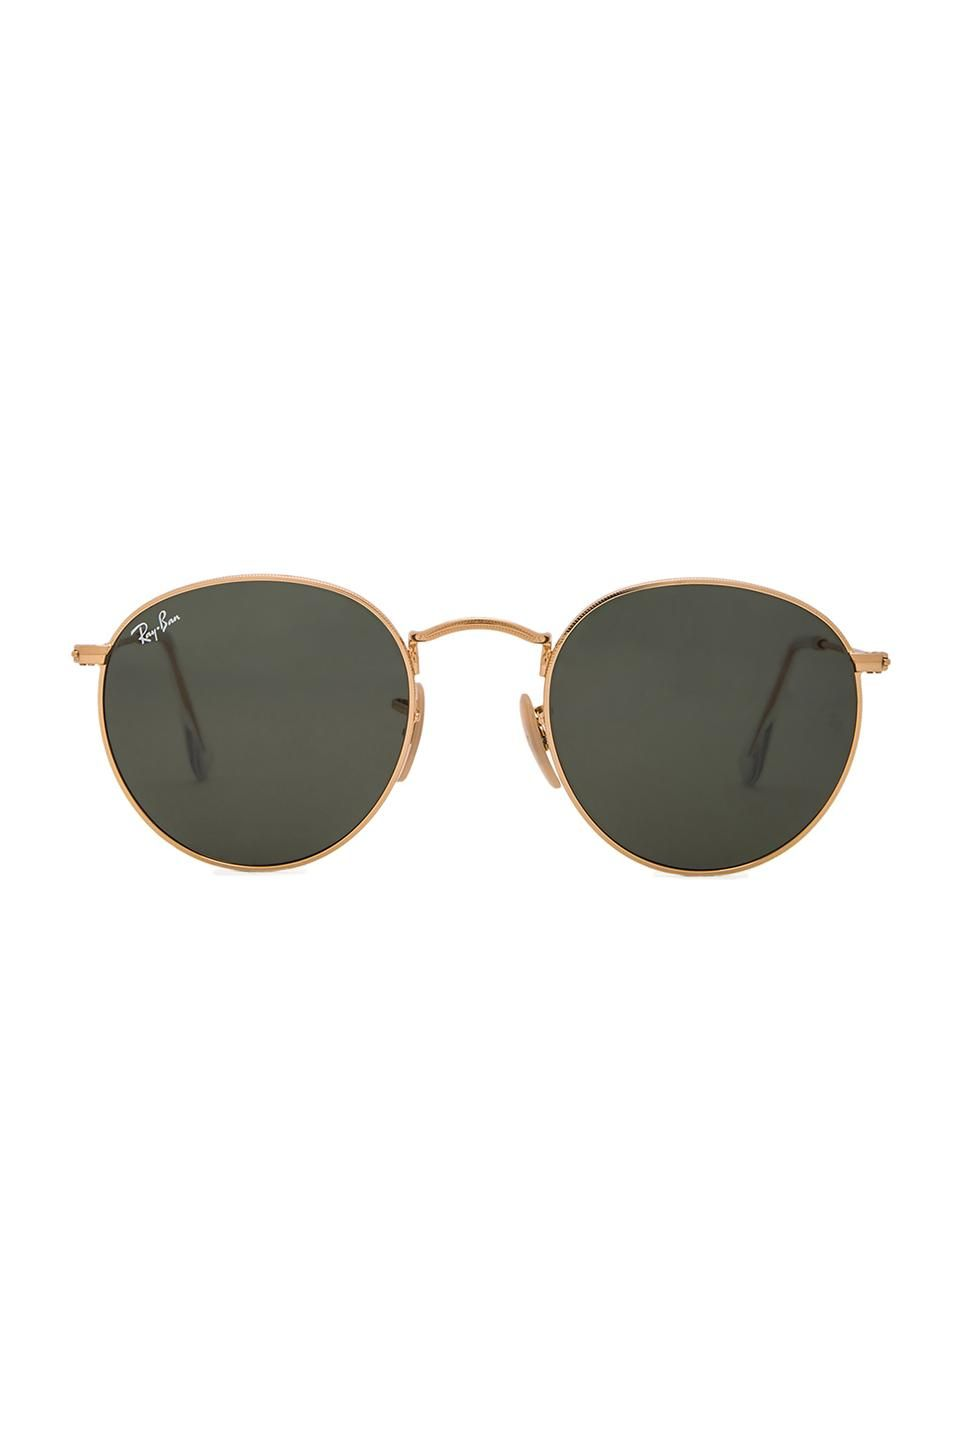 5597784264 Ray-Ban Round Metal in Green Classic | STYLE in 2019 | Round ray ...